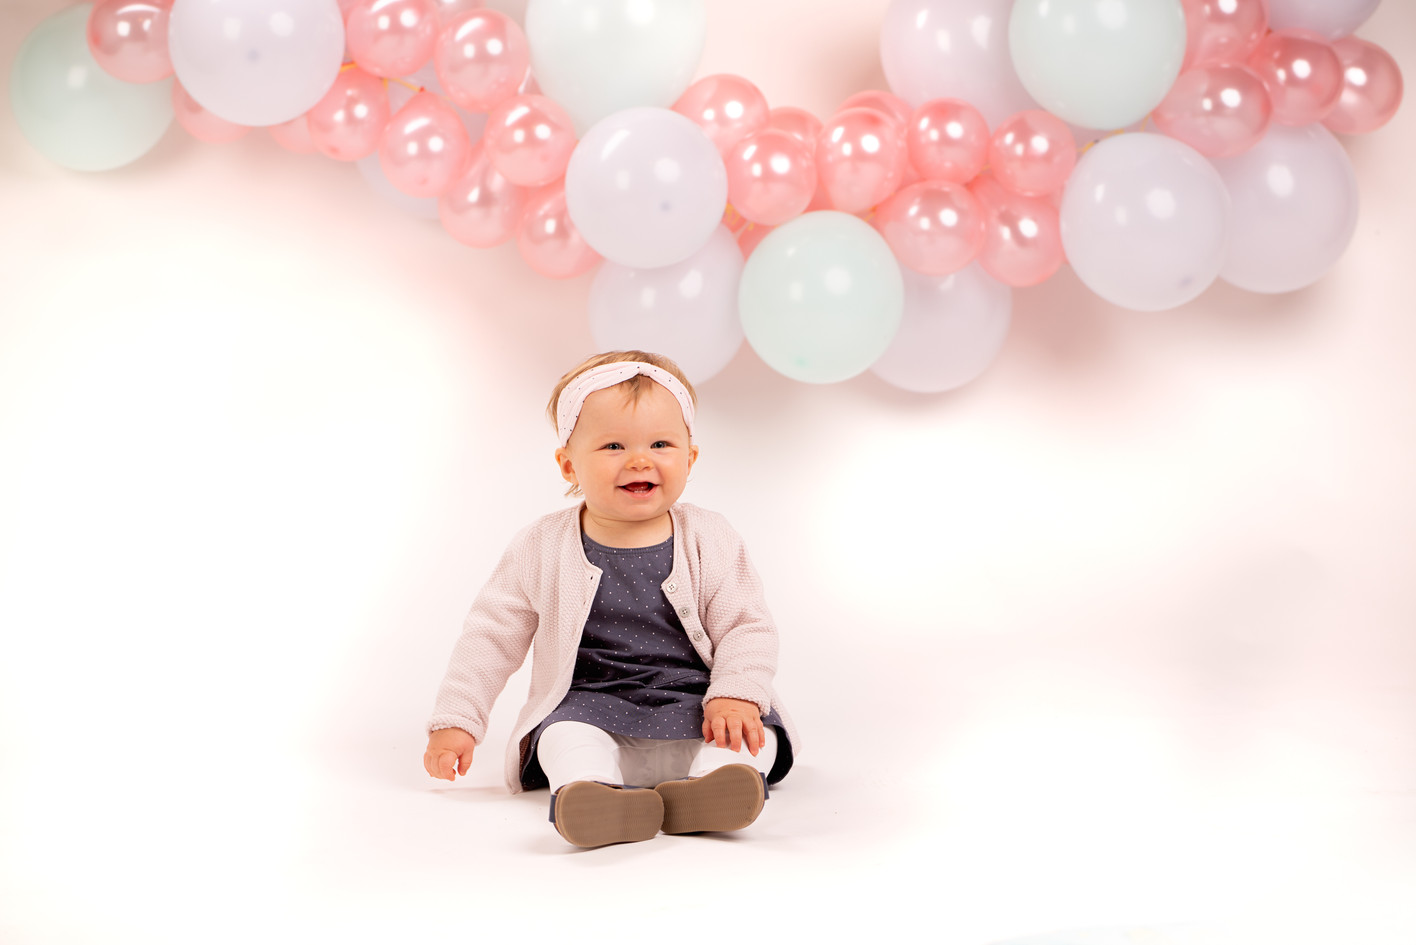 One year old birthday photos